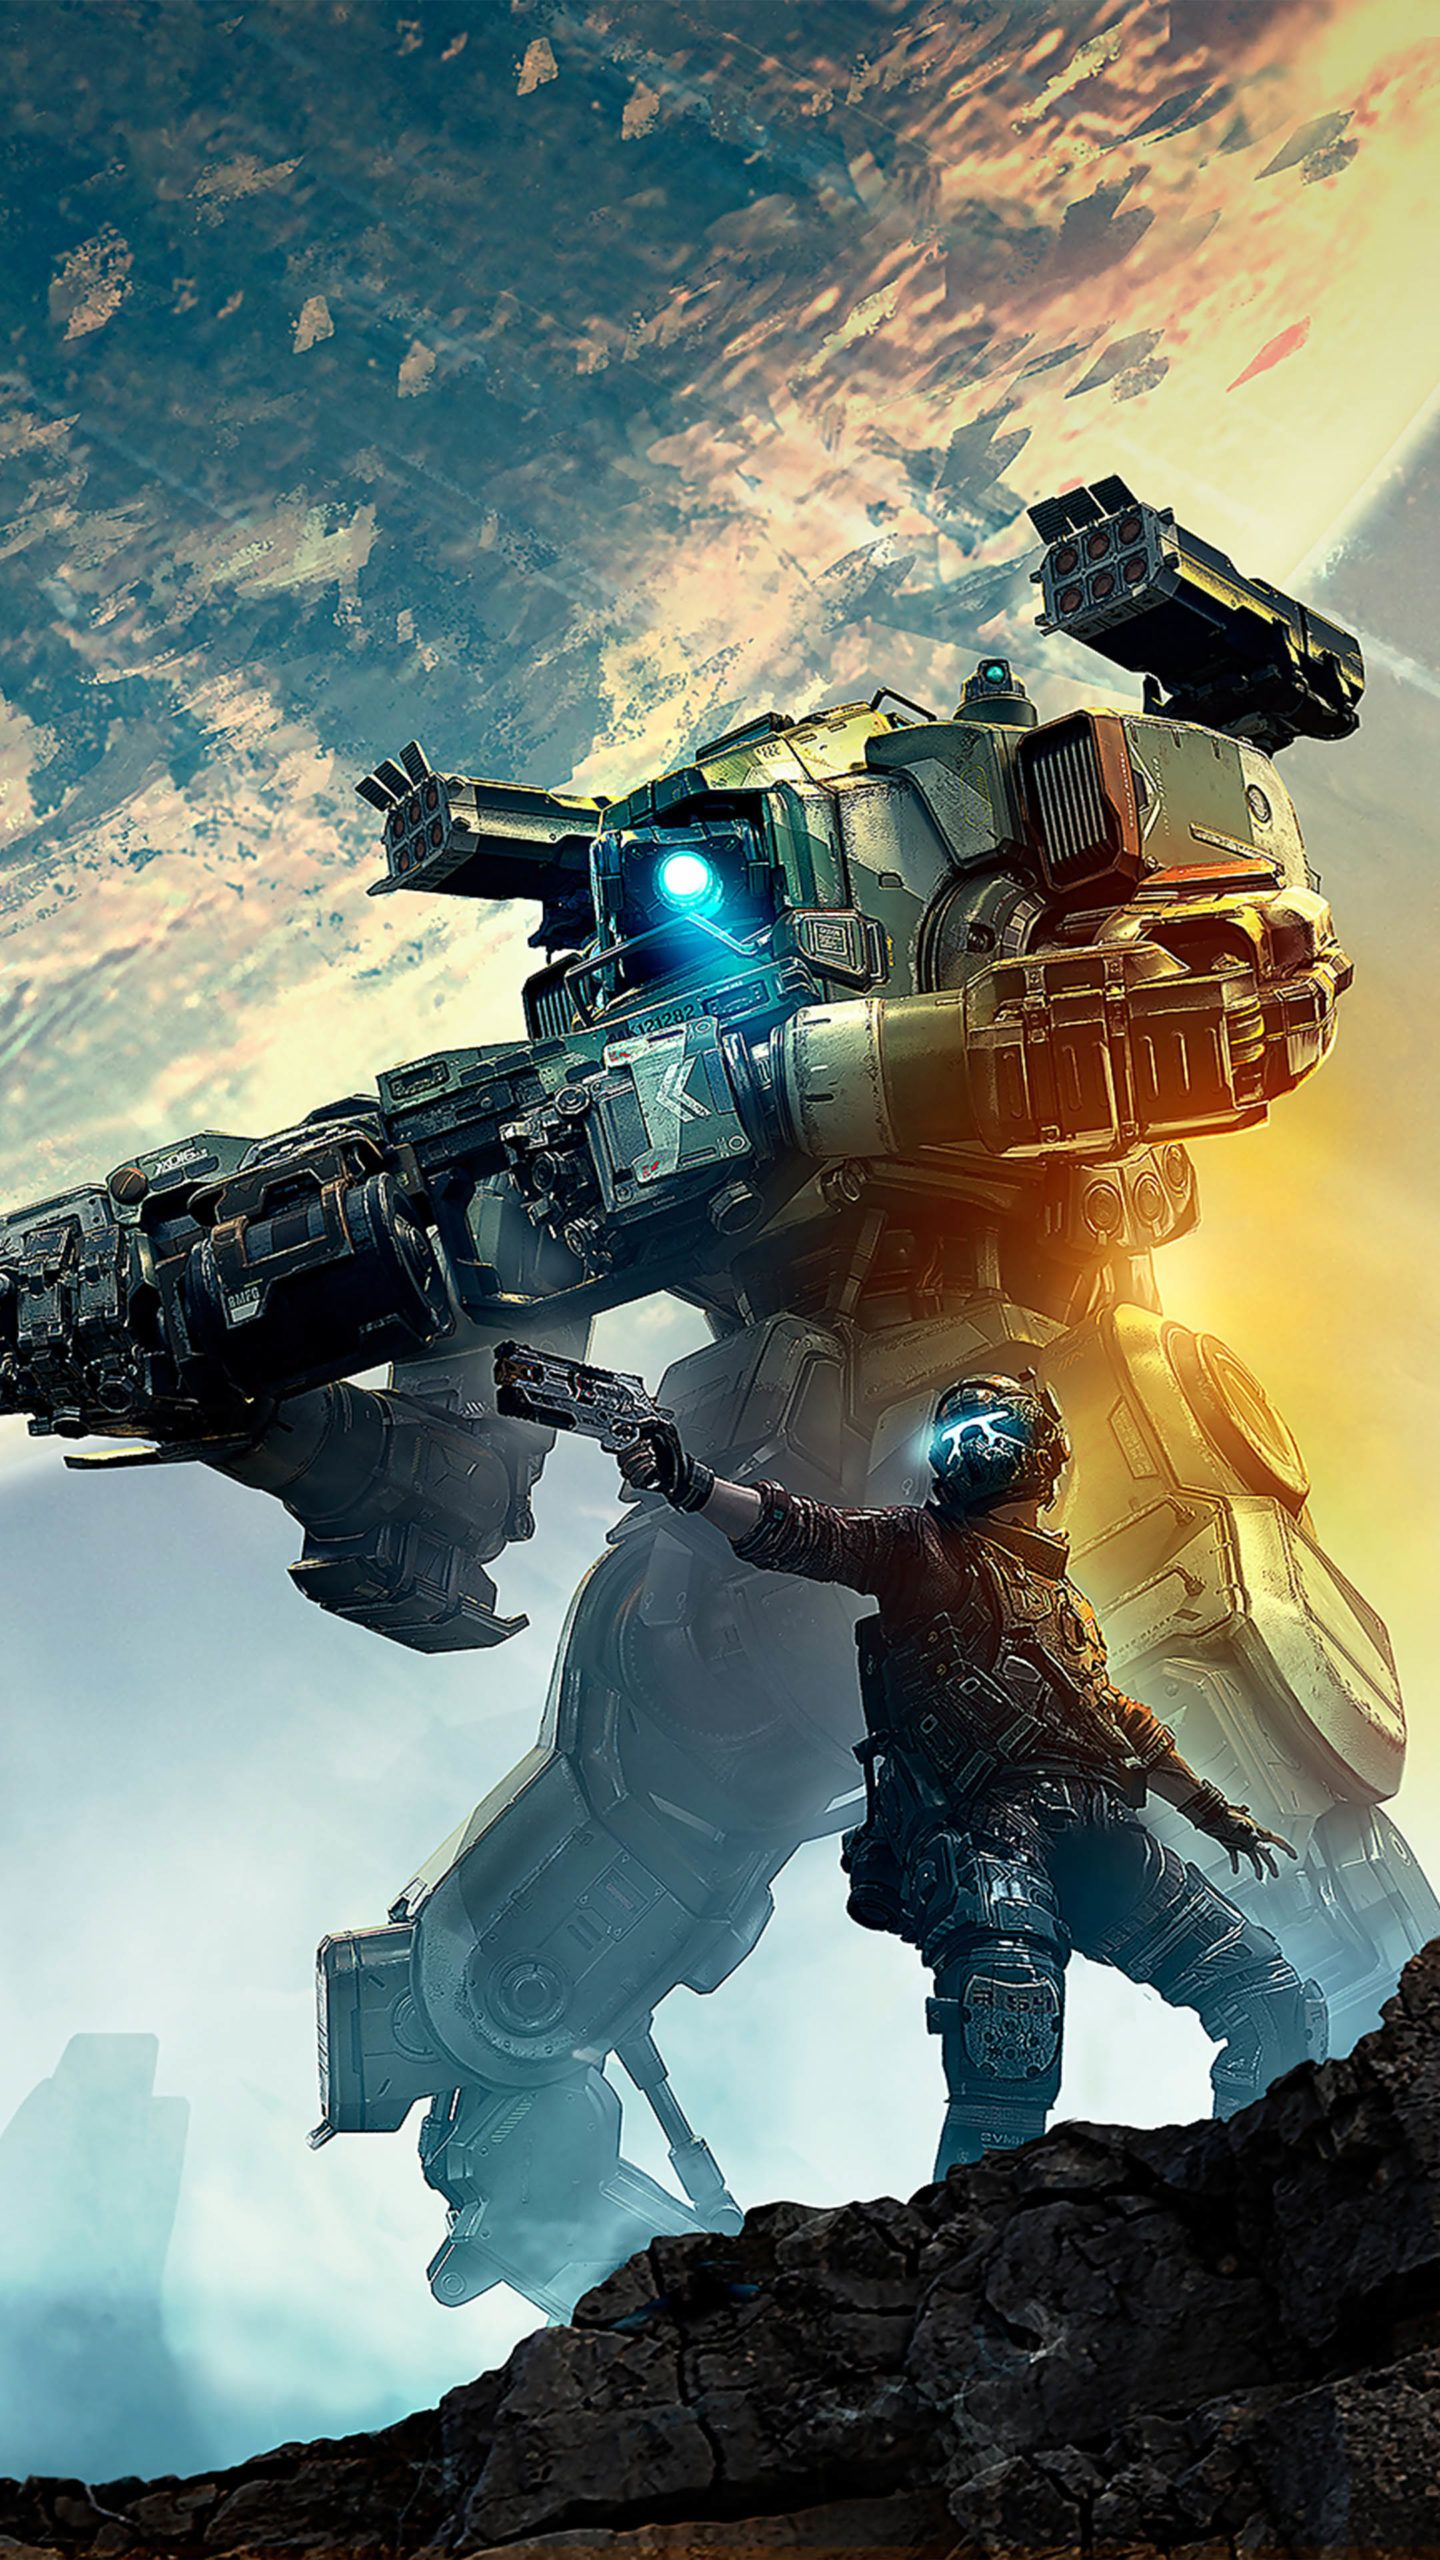 Titanfall 2 Game Poster 2020 4k Ultra Hd Mobile Wallpaper In 2020 Titanfall Mobile Wallpaper 4k Gaming Wallpaper